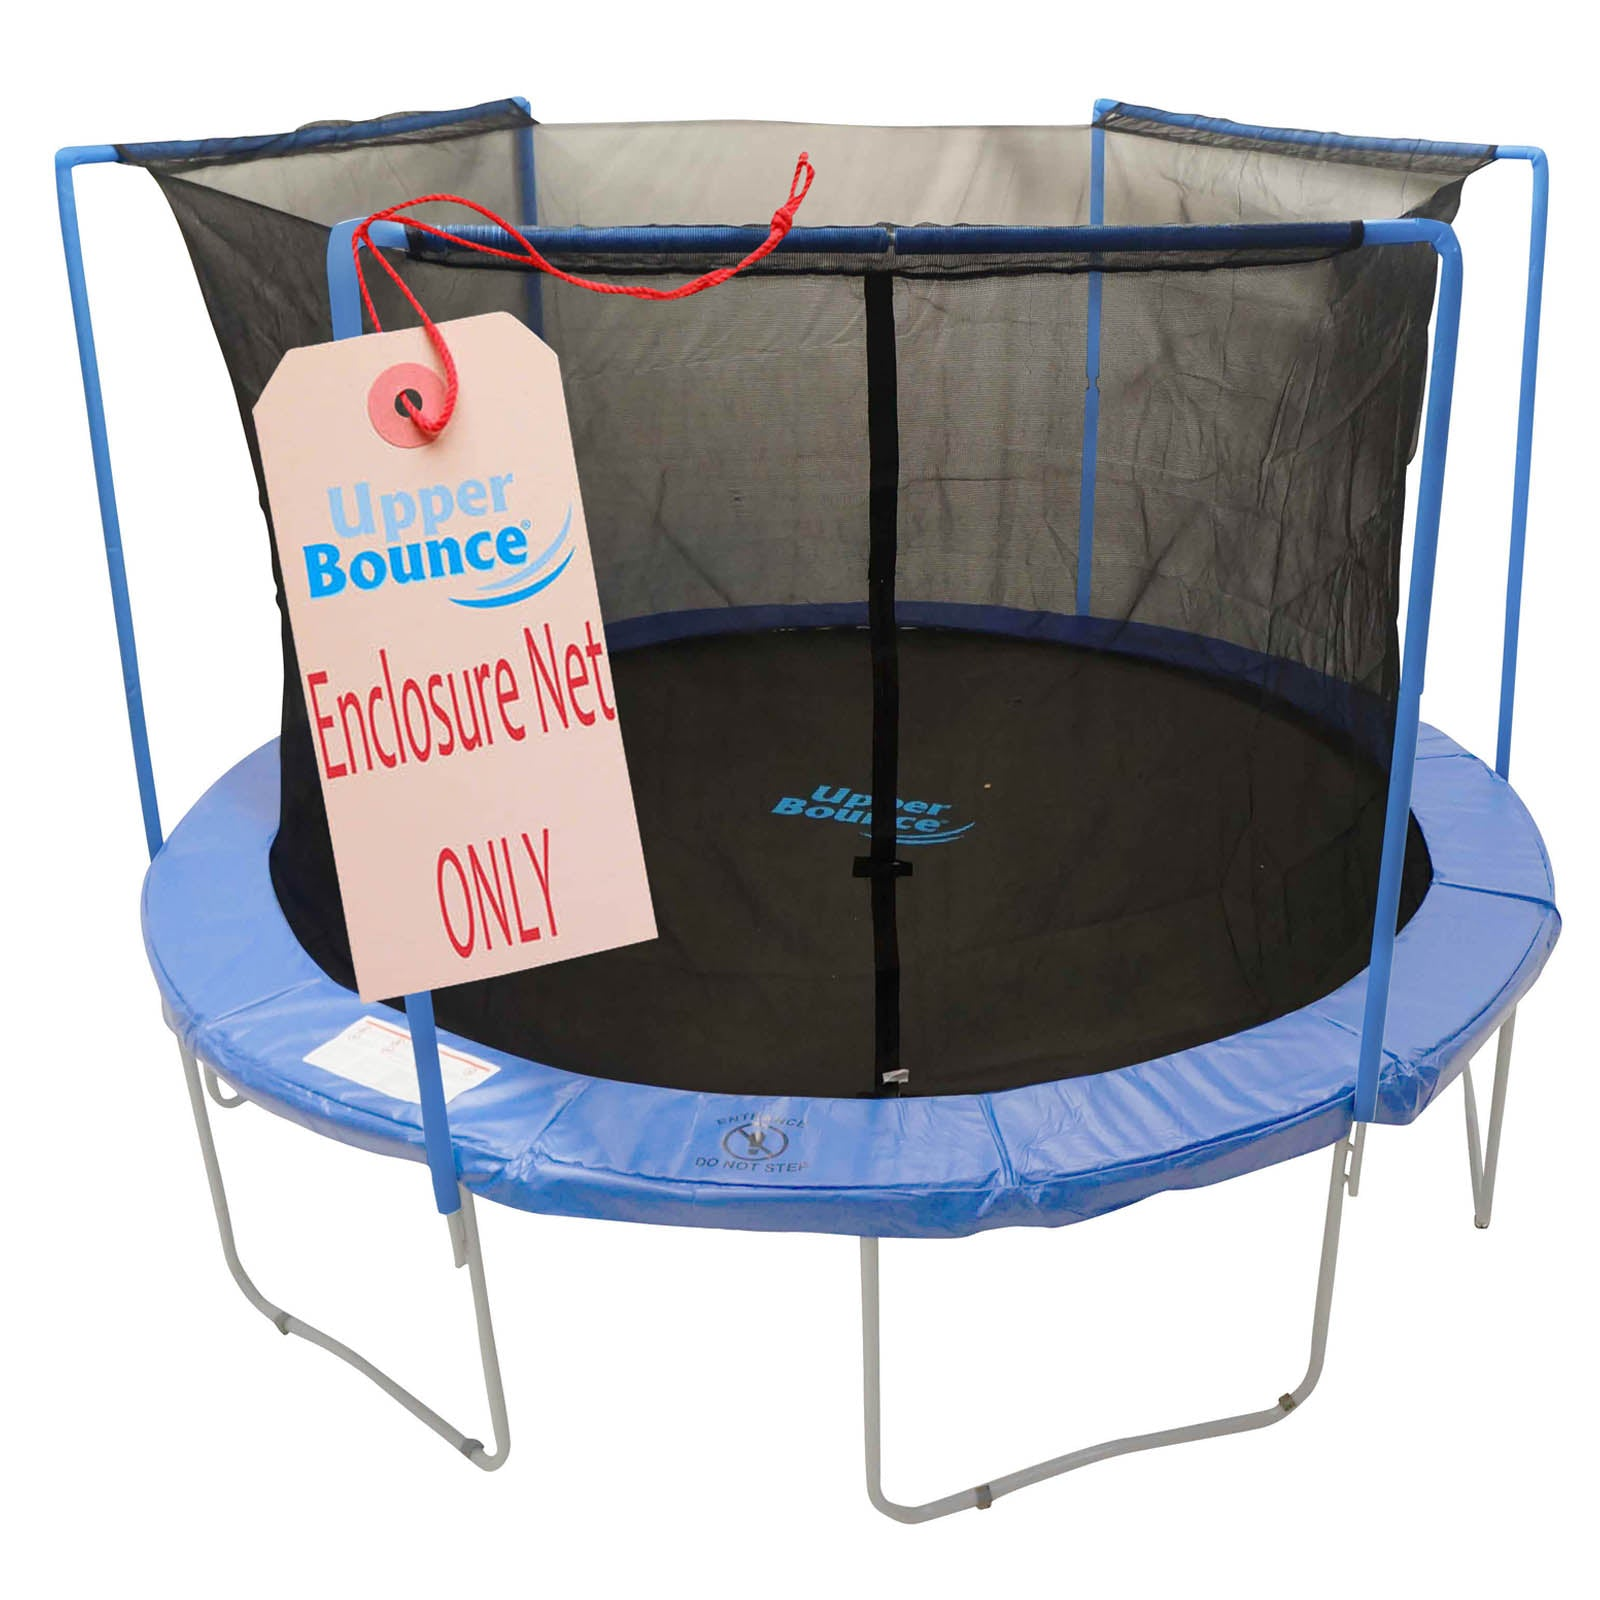 Trampoline Replacement Enclosure Safety Net, Fits For 6 FT. Round Frames, Using 3 Arches, with Sleeves on top -NET ONLY - onlinesportsmall